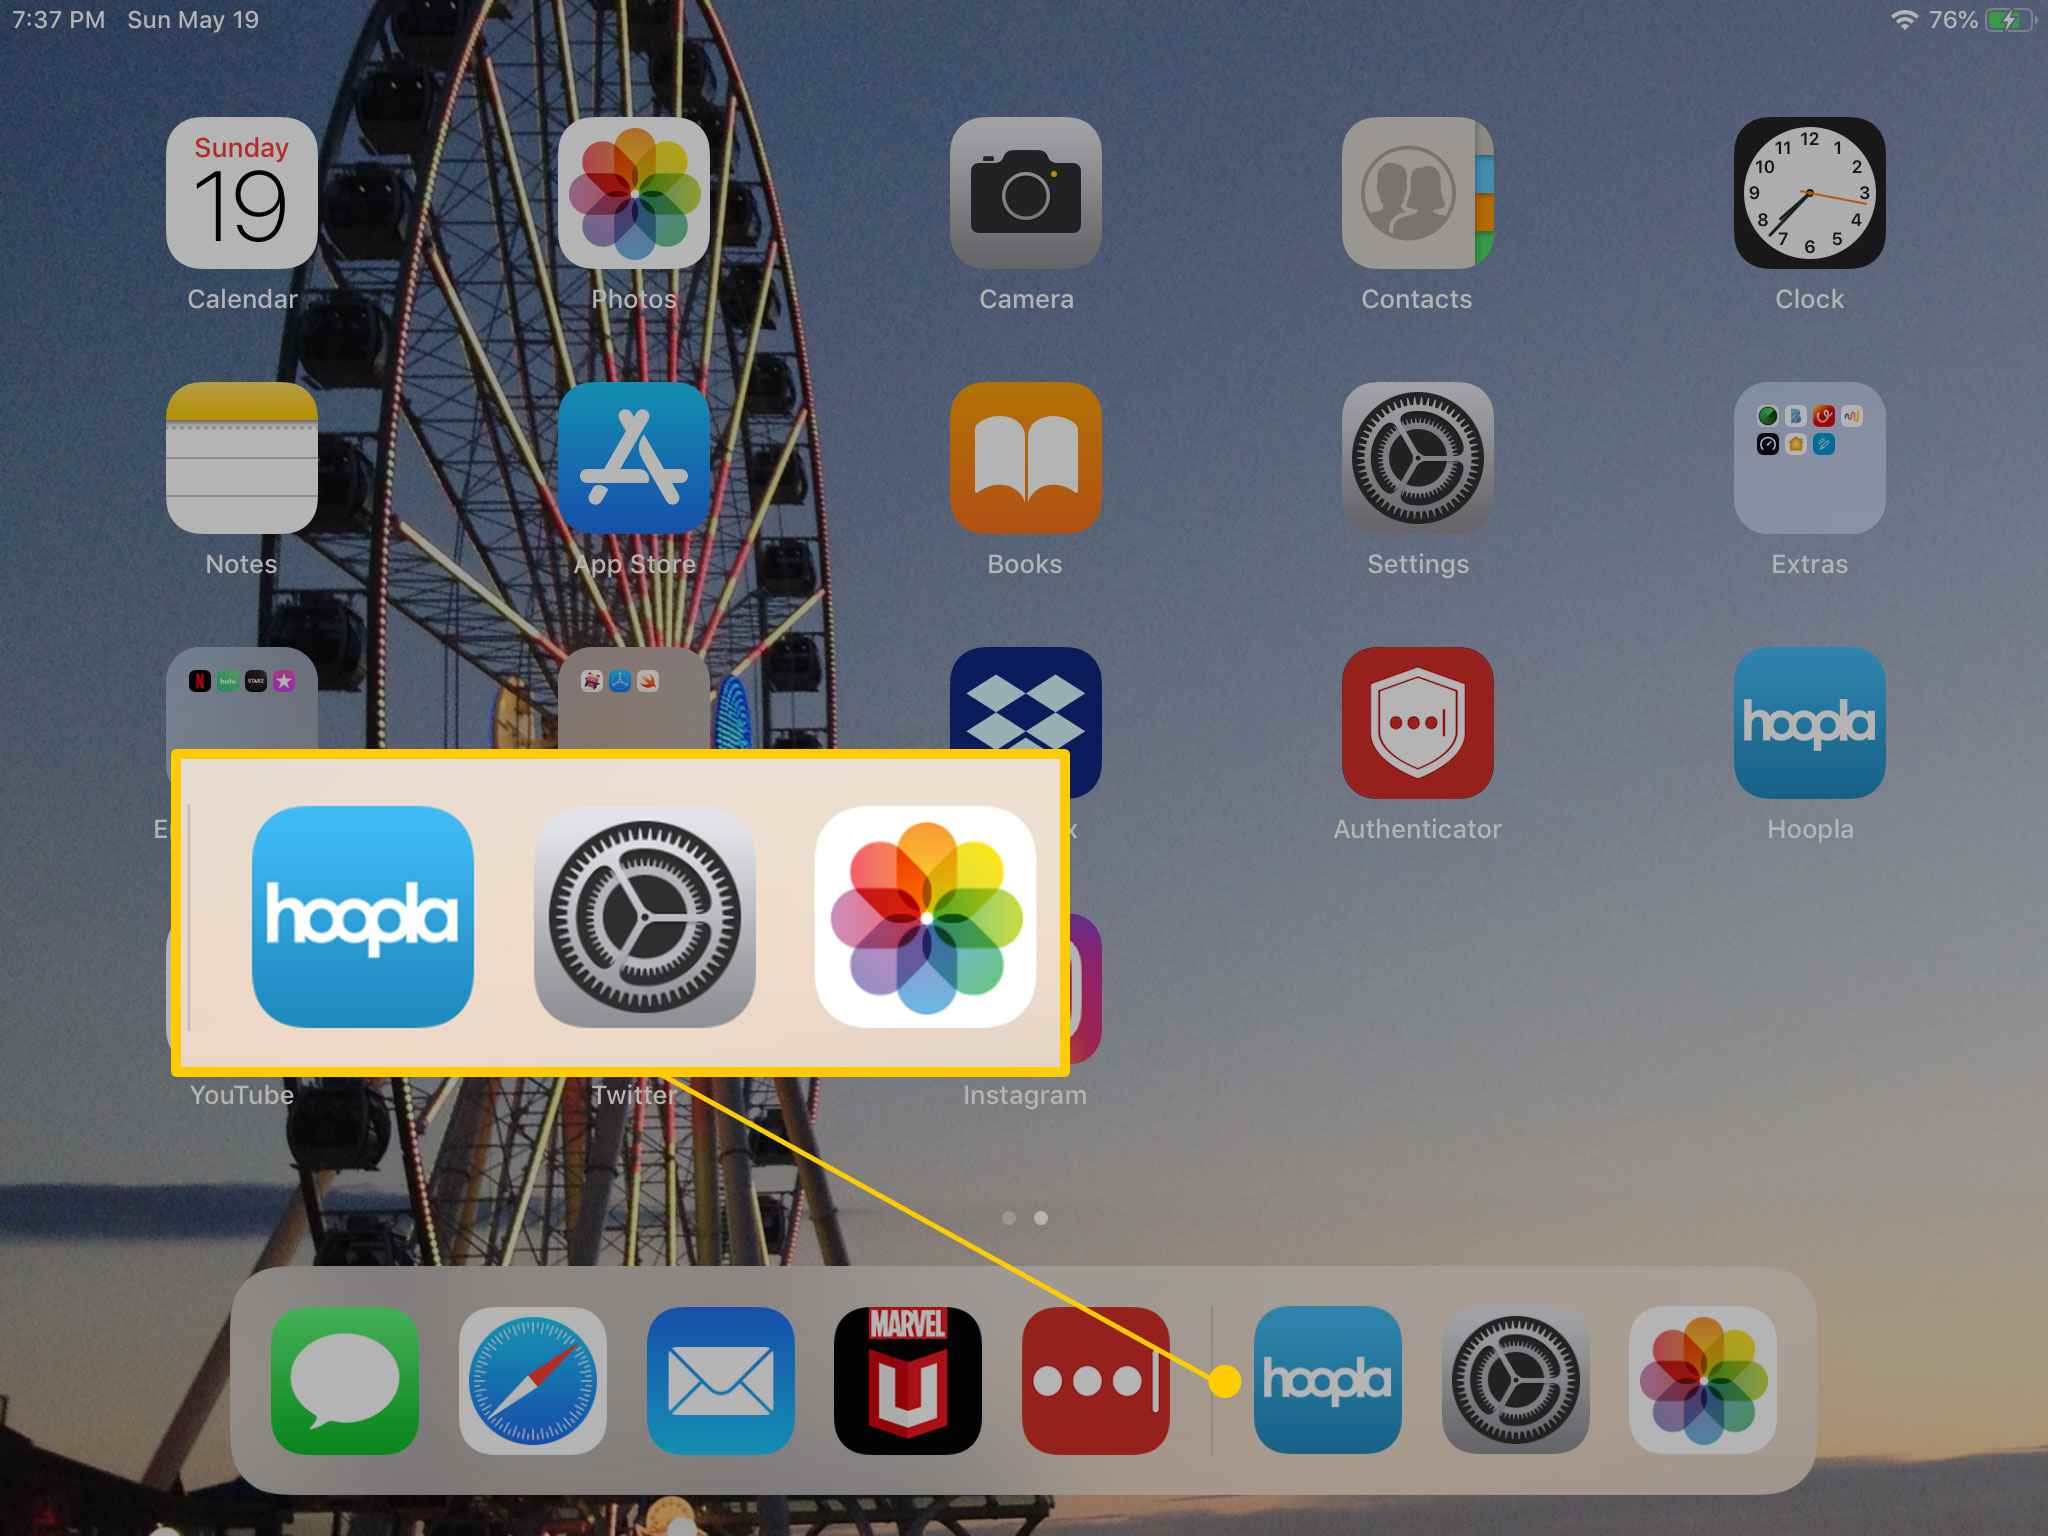 Recently opened apps in iPad dock